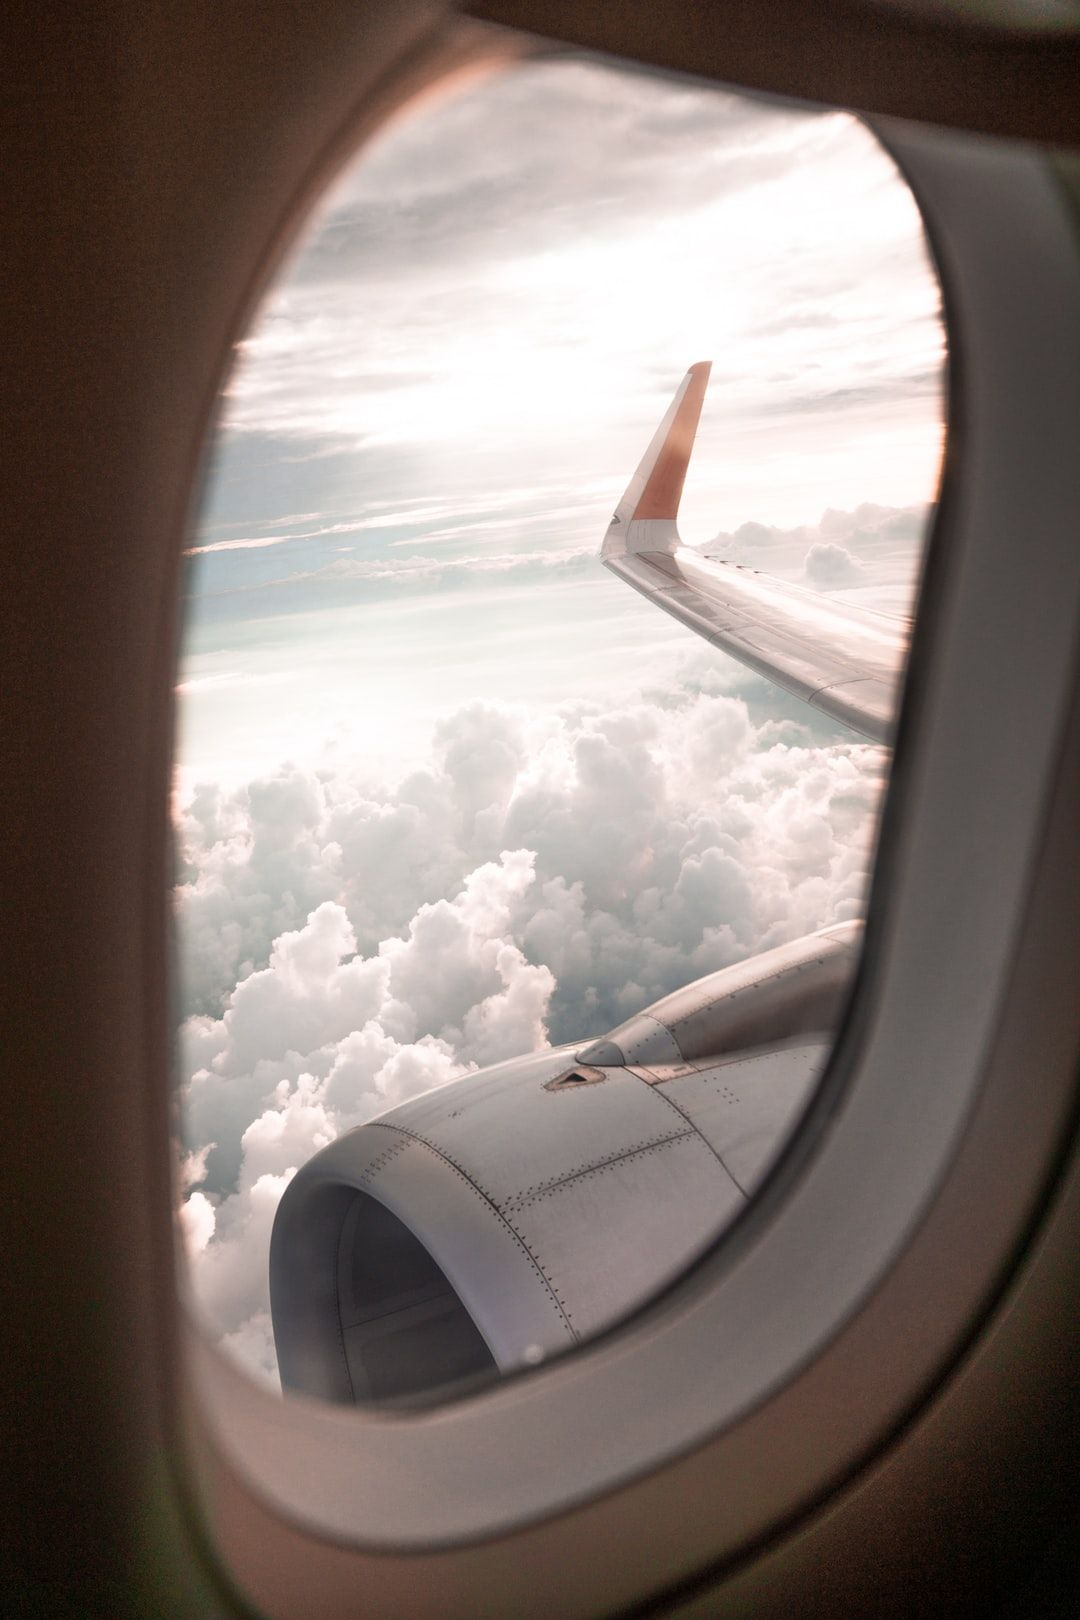 Pin By Ellie Miller On What I Want My Life To Be In 2020 Airplane Window View Airplane Window Plane Window